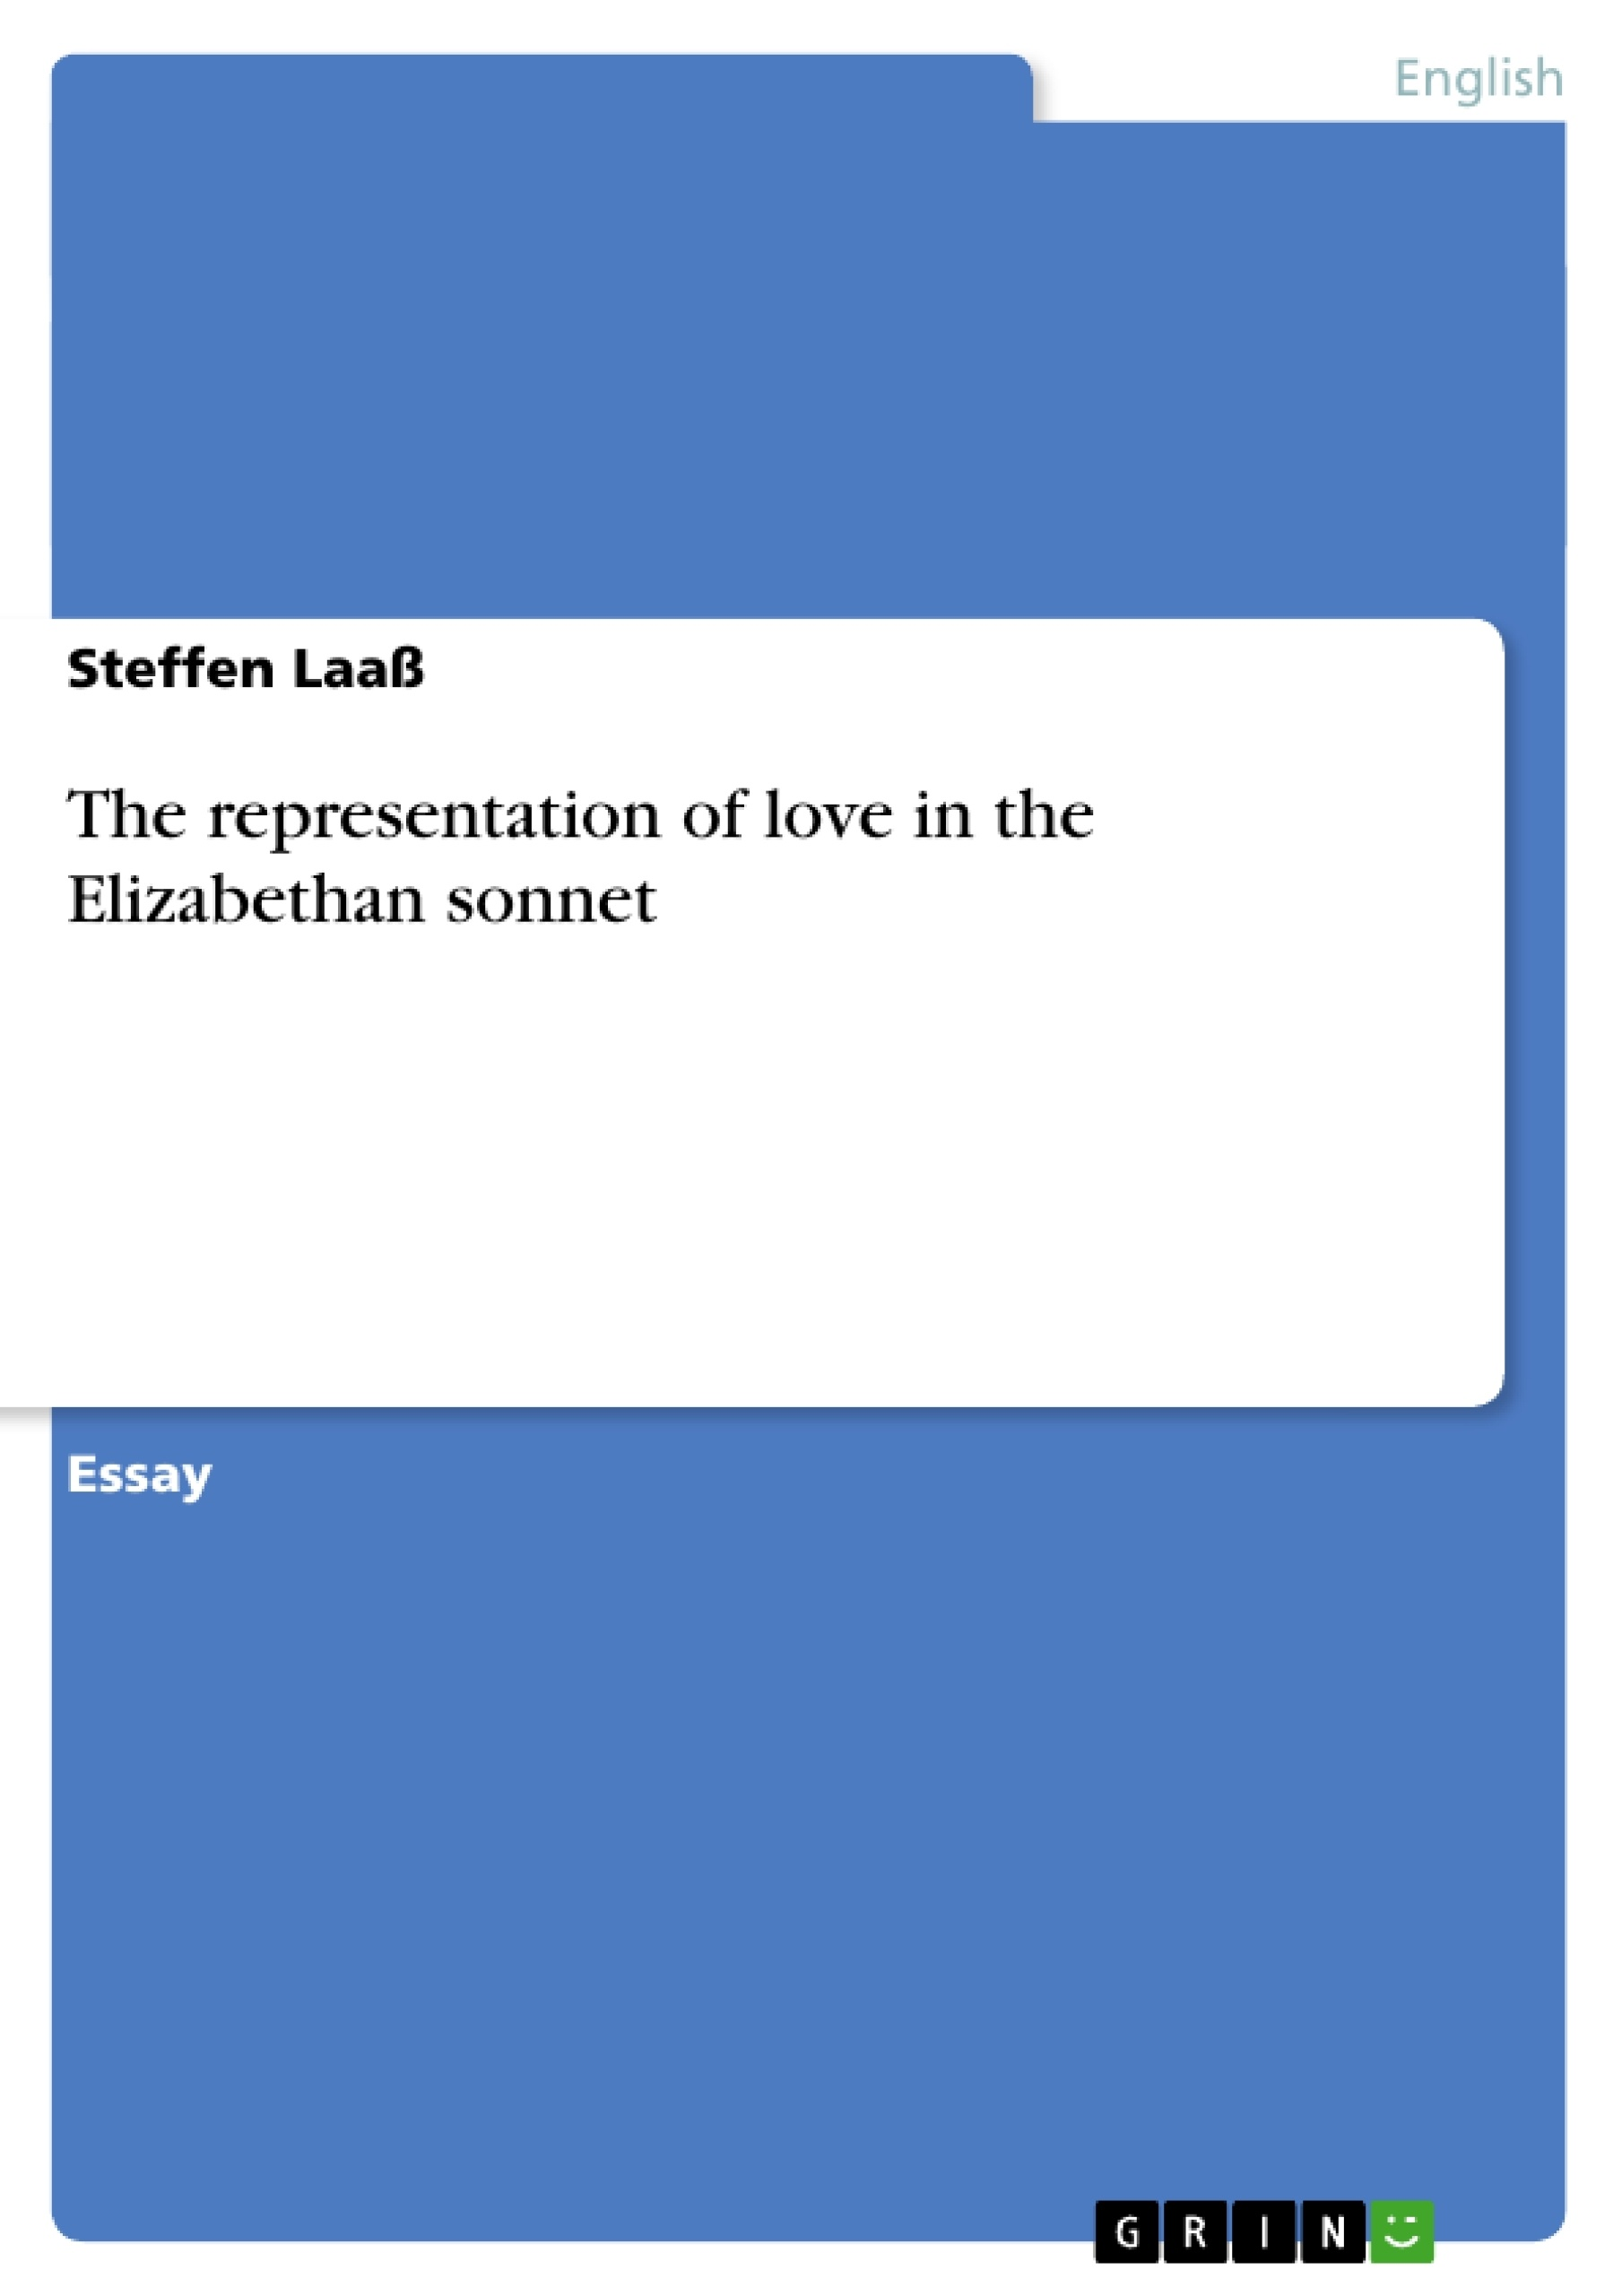 The Representation Of Love In Elizabethan Sonnet Grin My I A Fever Longing Still Analysis